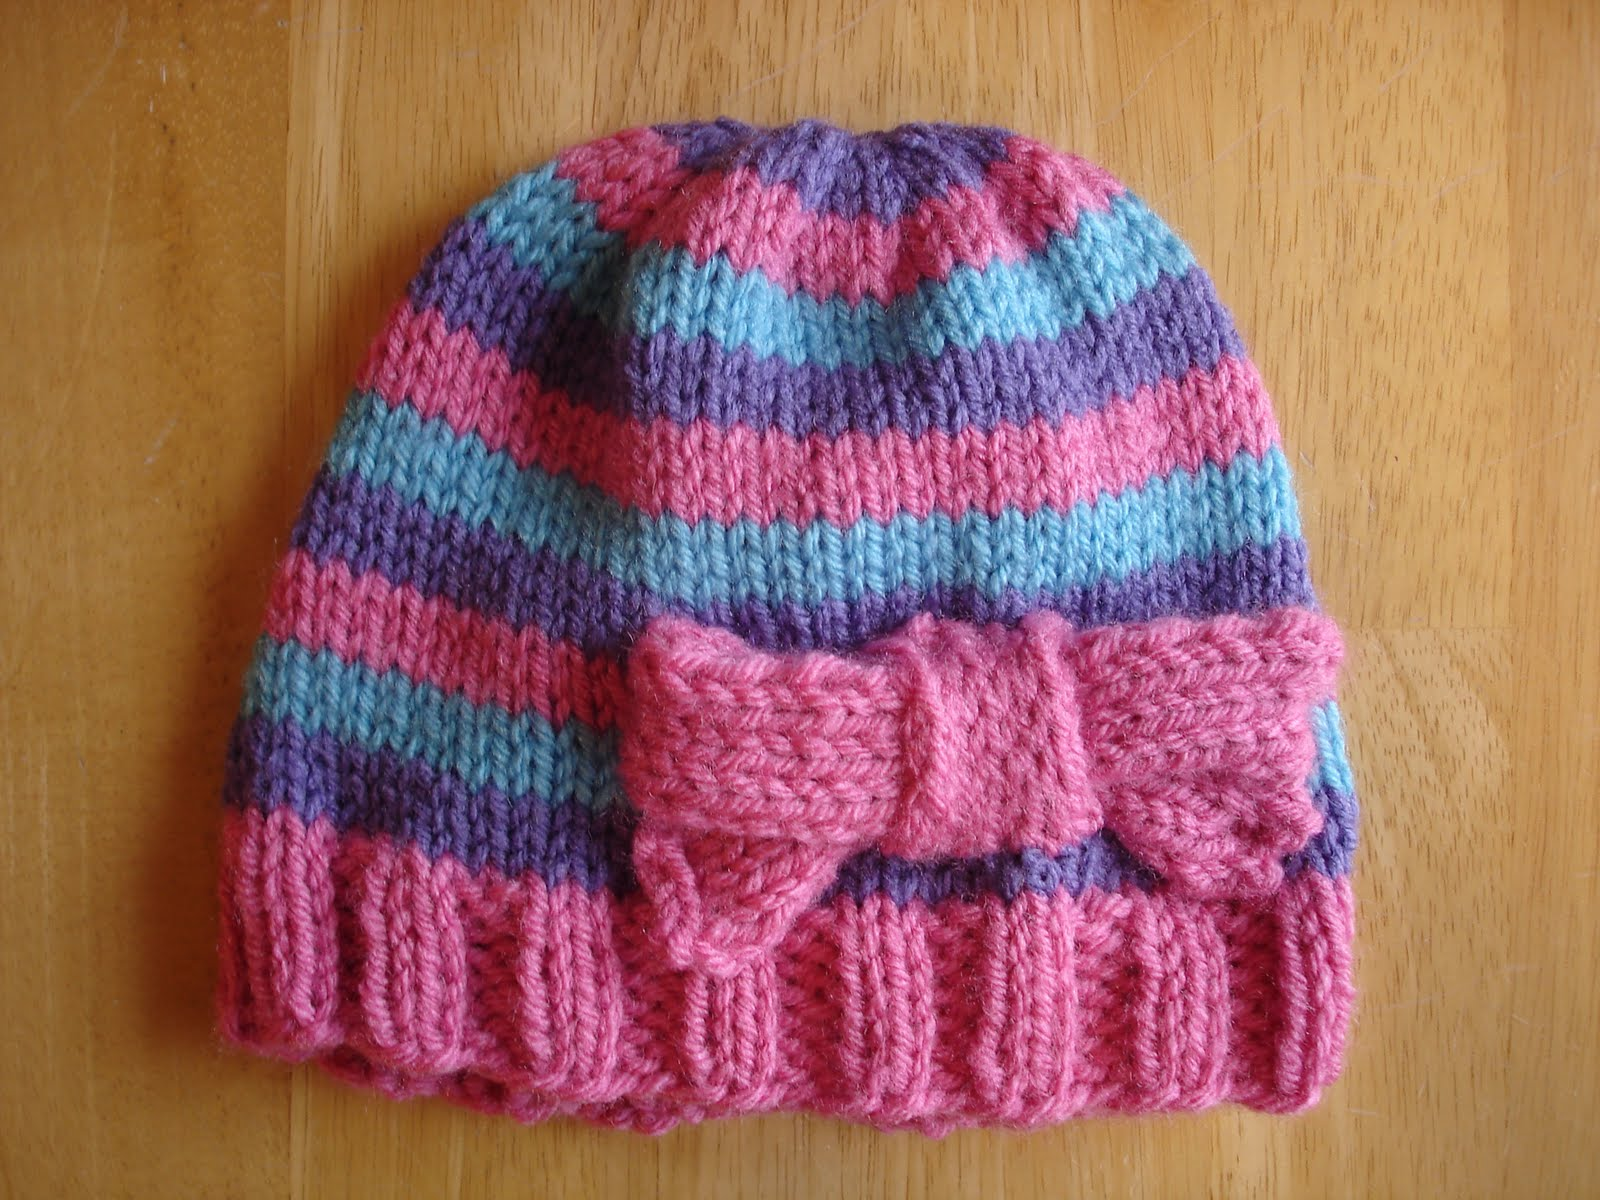 Knitting Patterns Caps : Free Knitting Patterns Hats Search Results Calendar 2015